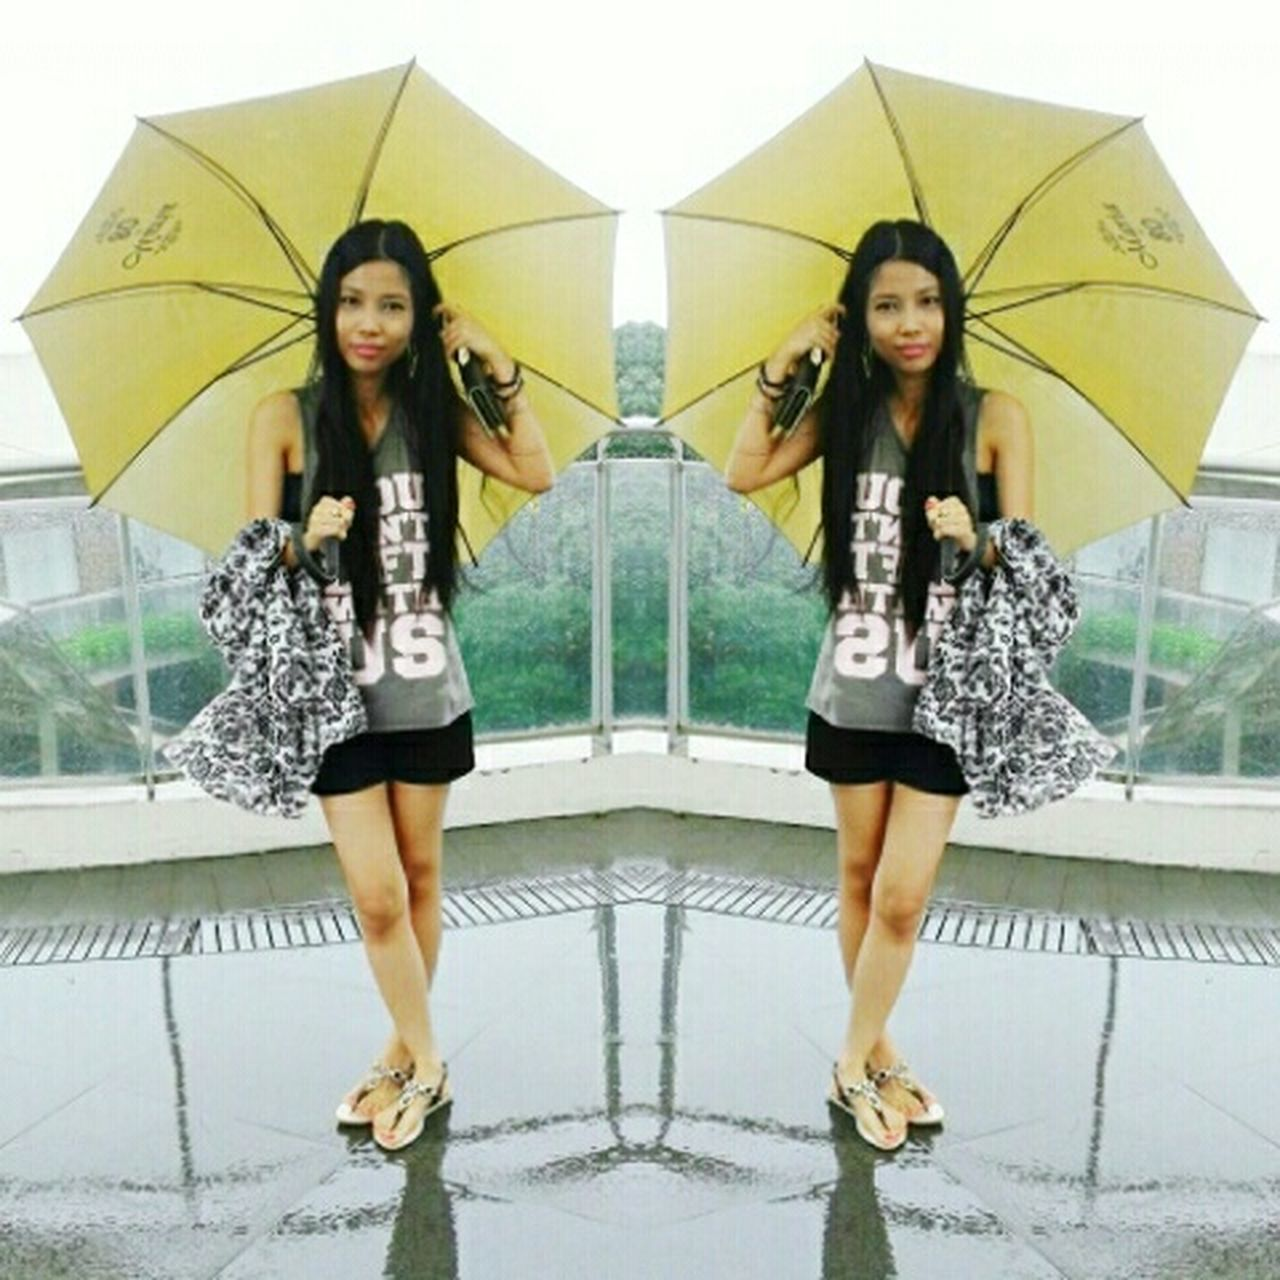 The Fashionist - 2015 EyeEm Awards Street Fashion Raining Outside Rainy Days Let's Do It Chic! Casual Look Casual Day Ootd No Makeup Filipina